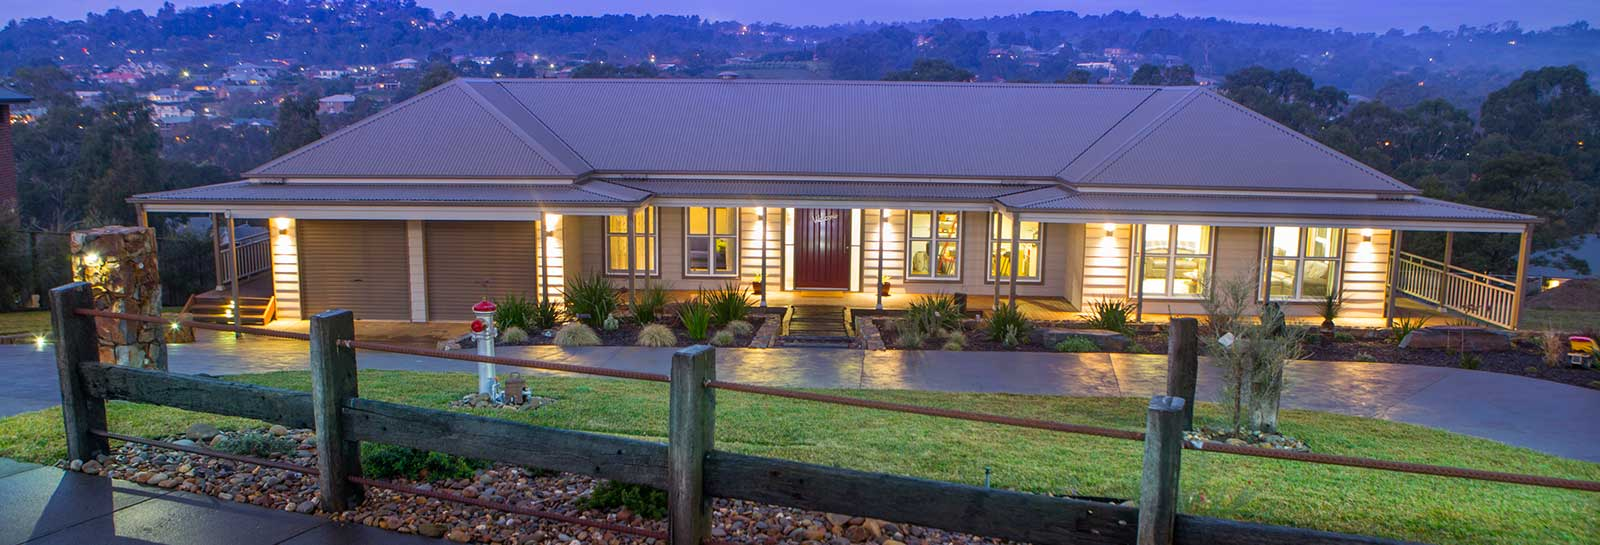 Rural home designs nsw 28 images modern rural home for Rural home designs nsw